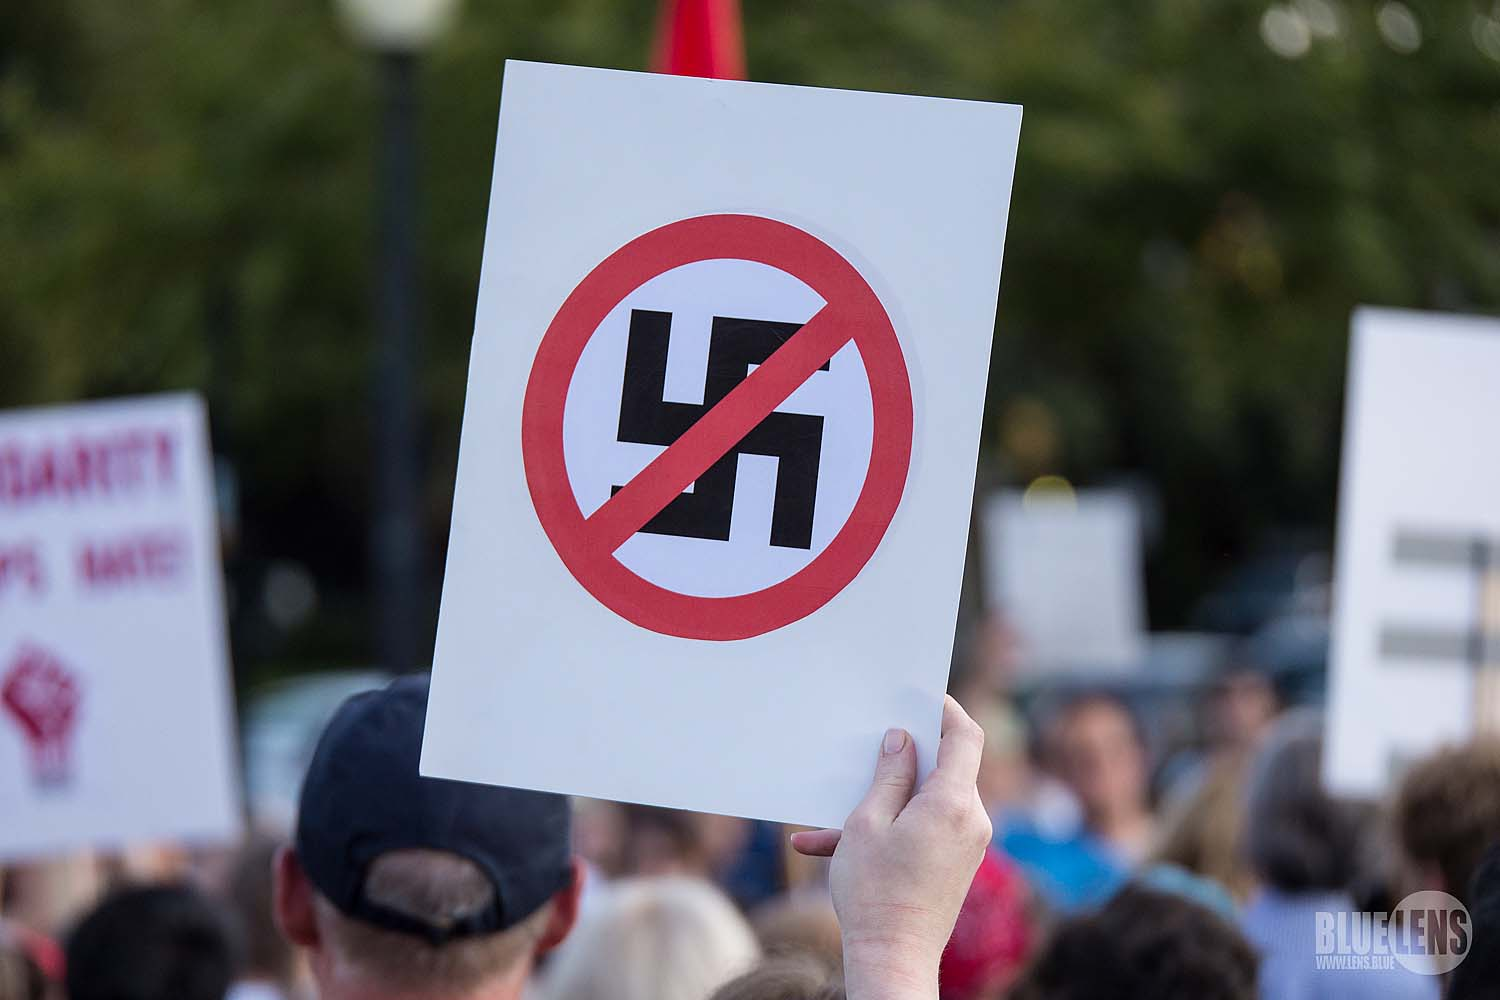 White supremacists and neo-nazis gather in Charlottesville, Virginia, for the Unite the Right rally, holding anti-semitic posters, while counter-protesters hold their anti-racism signs.